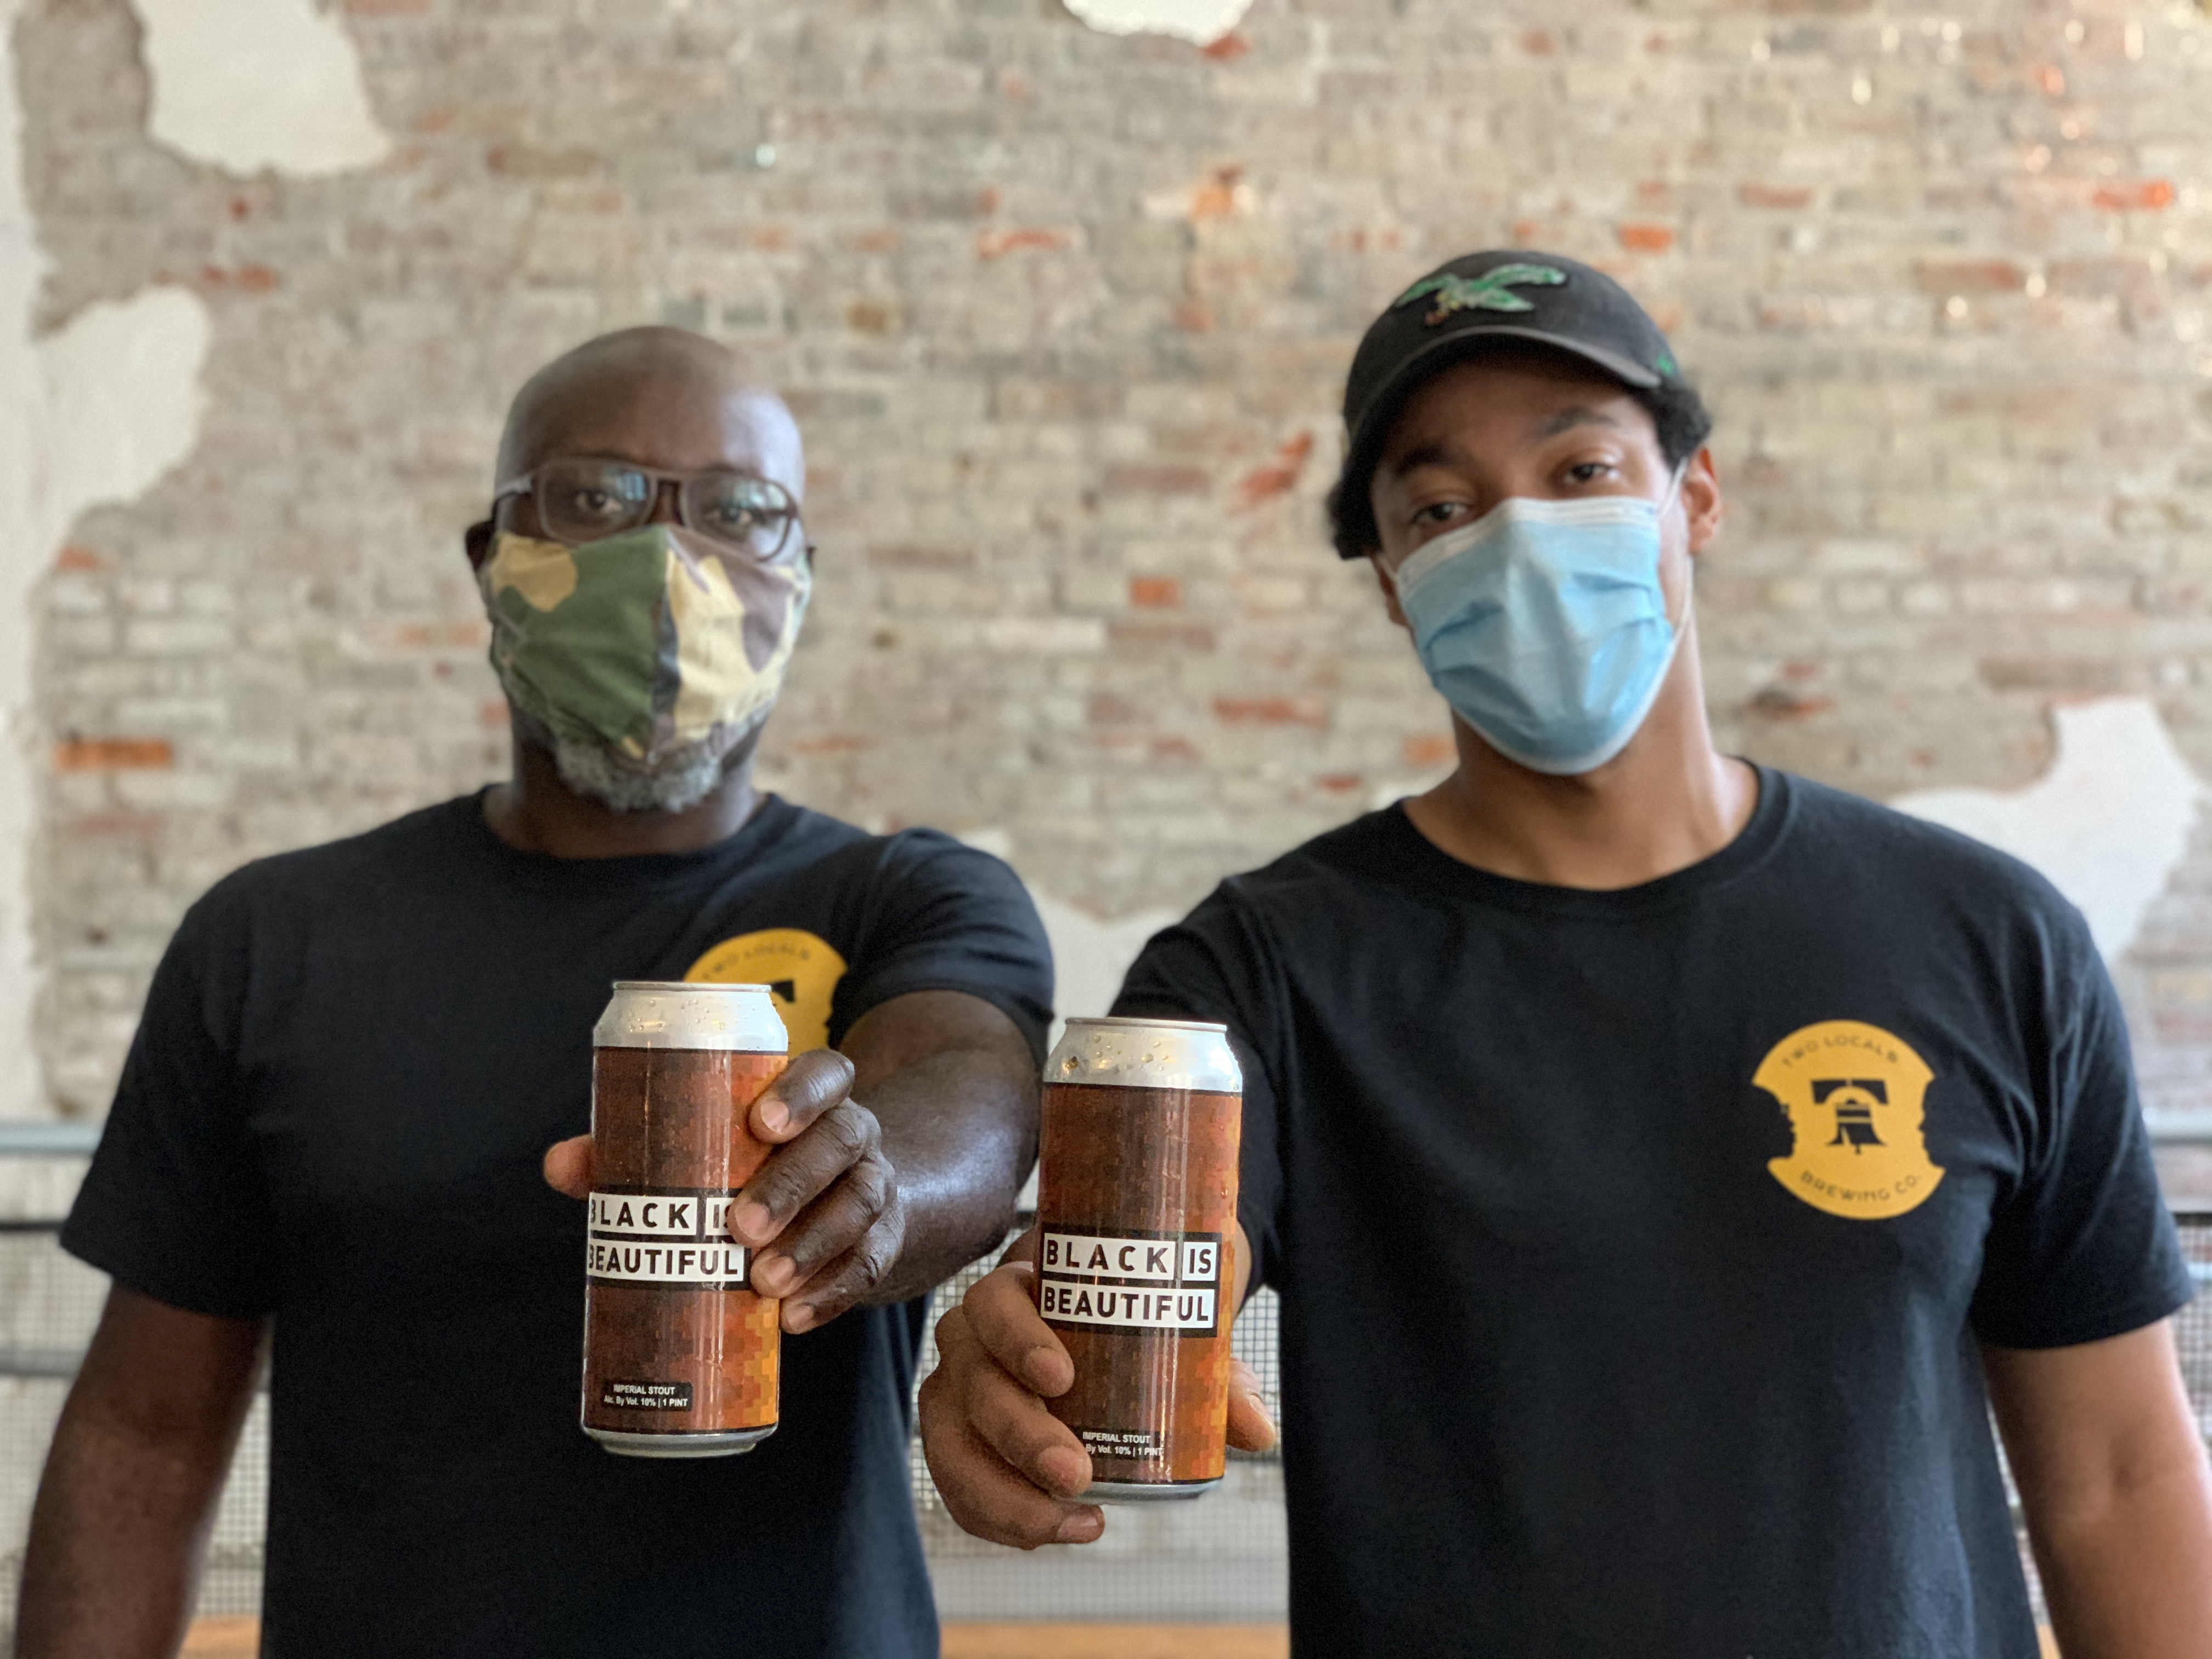 two men with pandemic face masks holding cans of beer